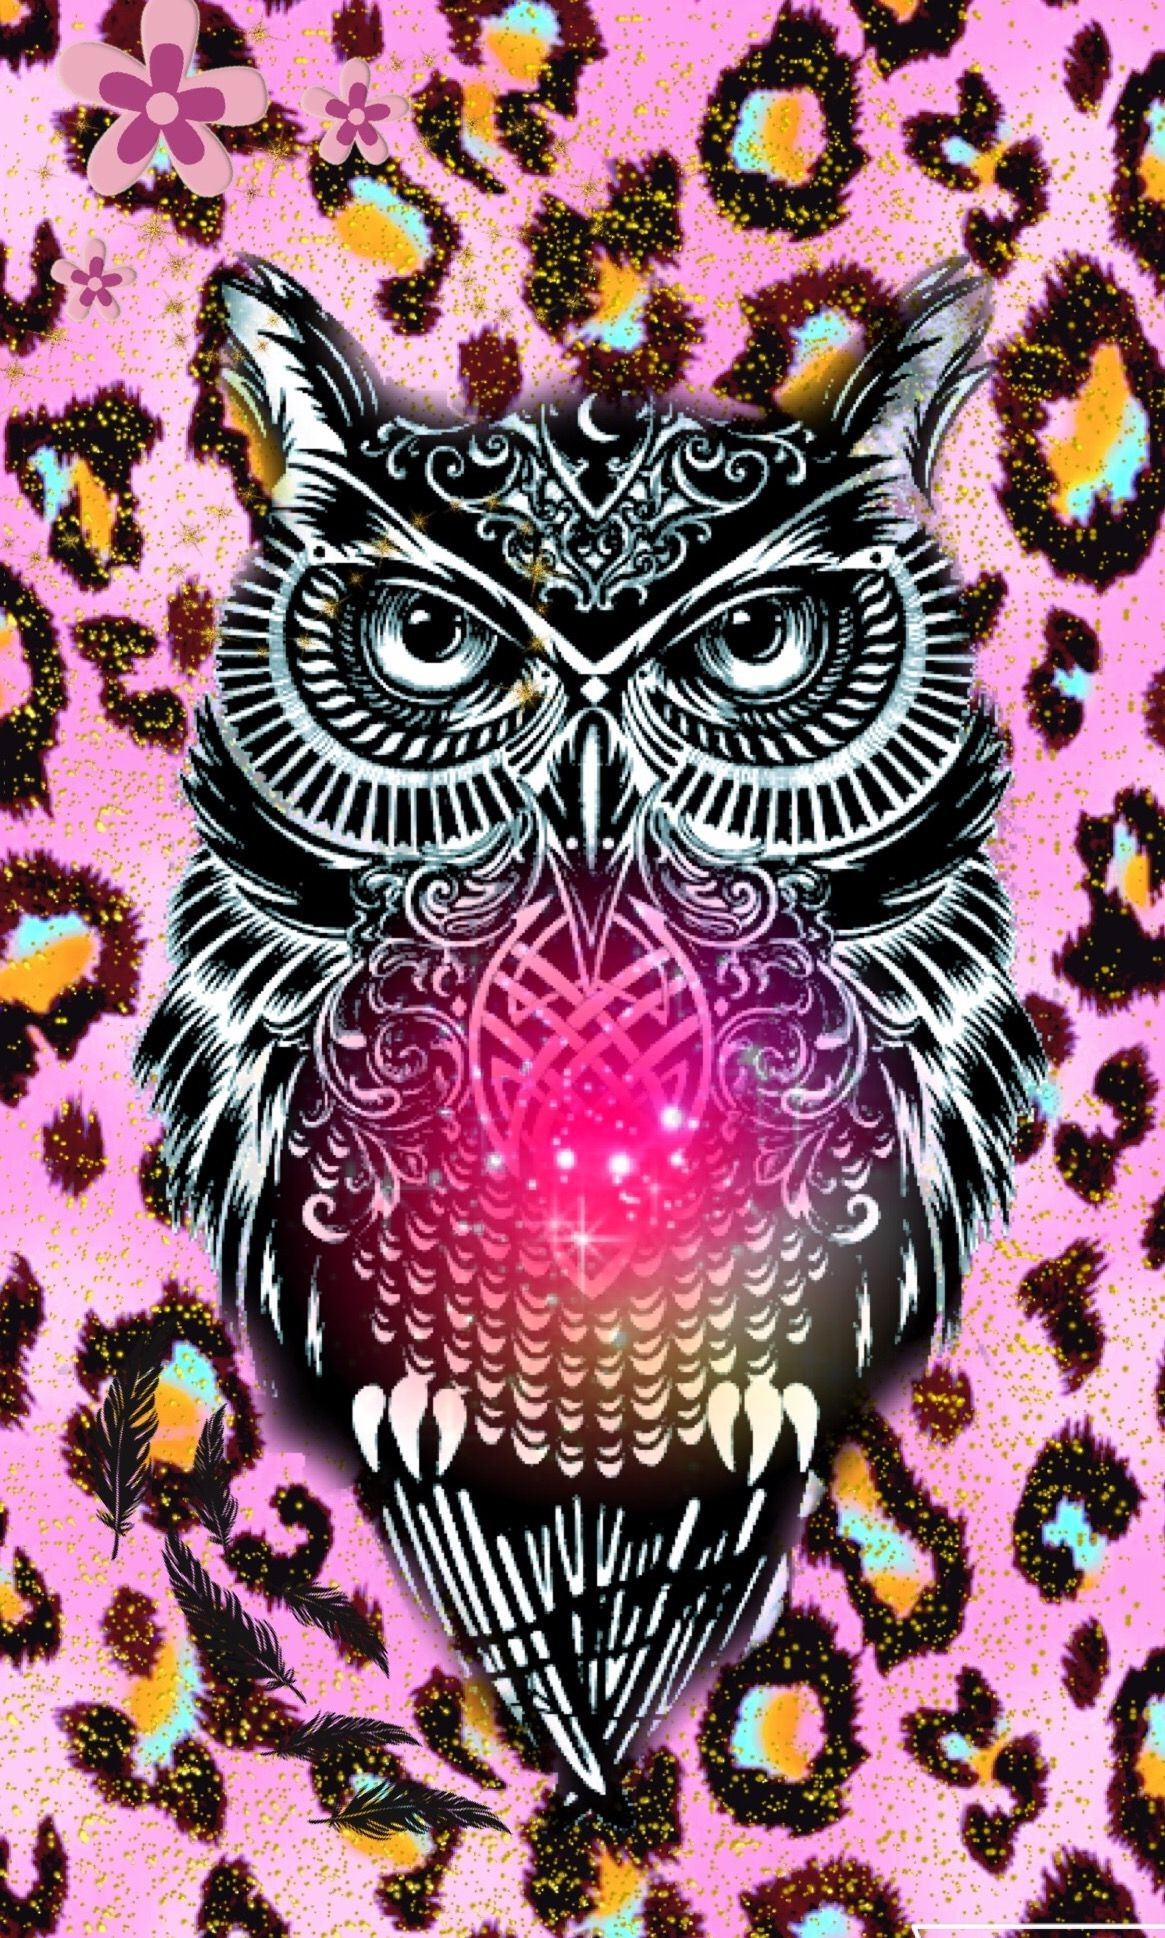 Res: 1165x1938, Animal print owl cute hispter by me